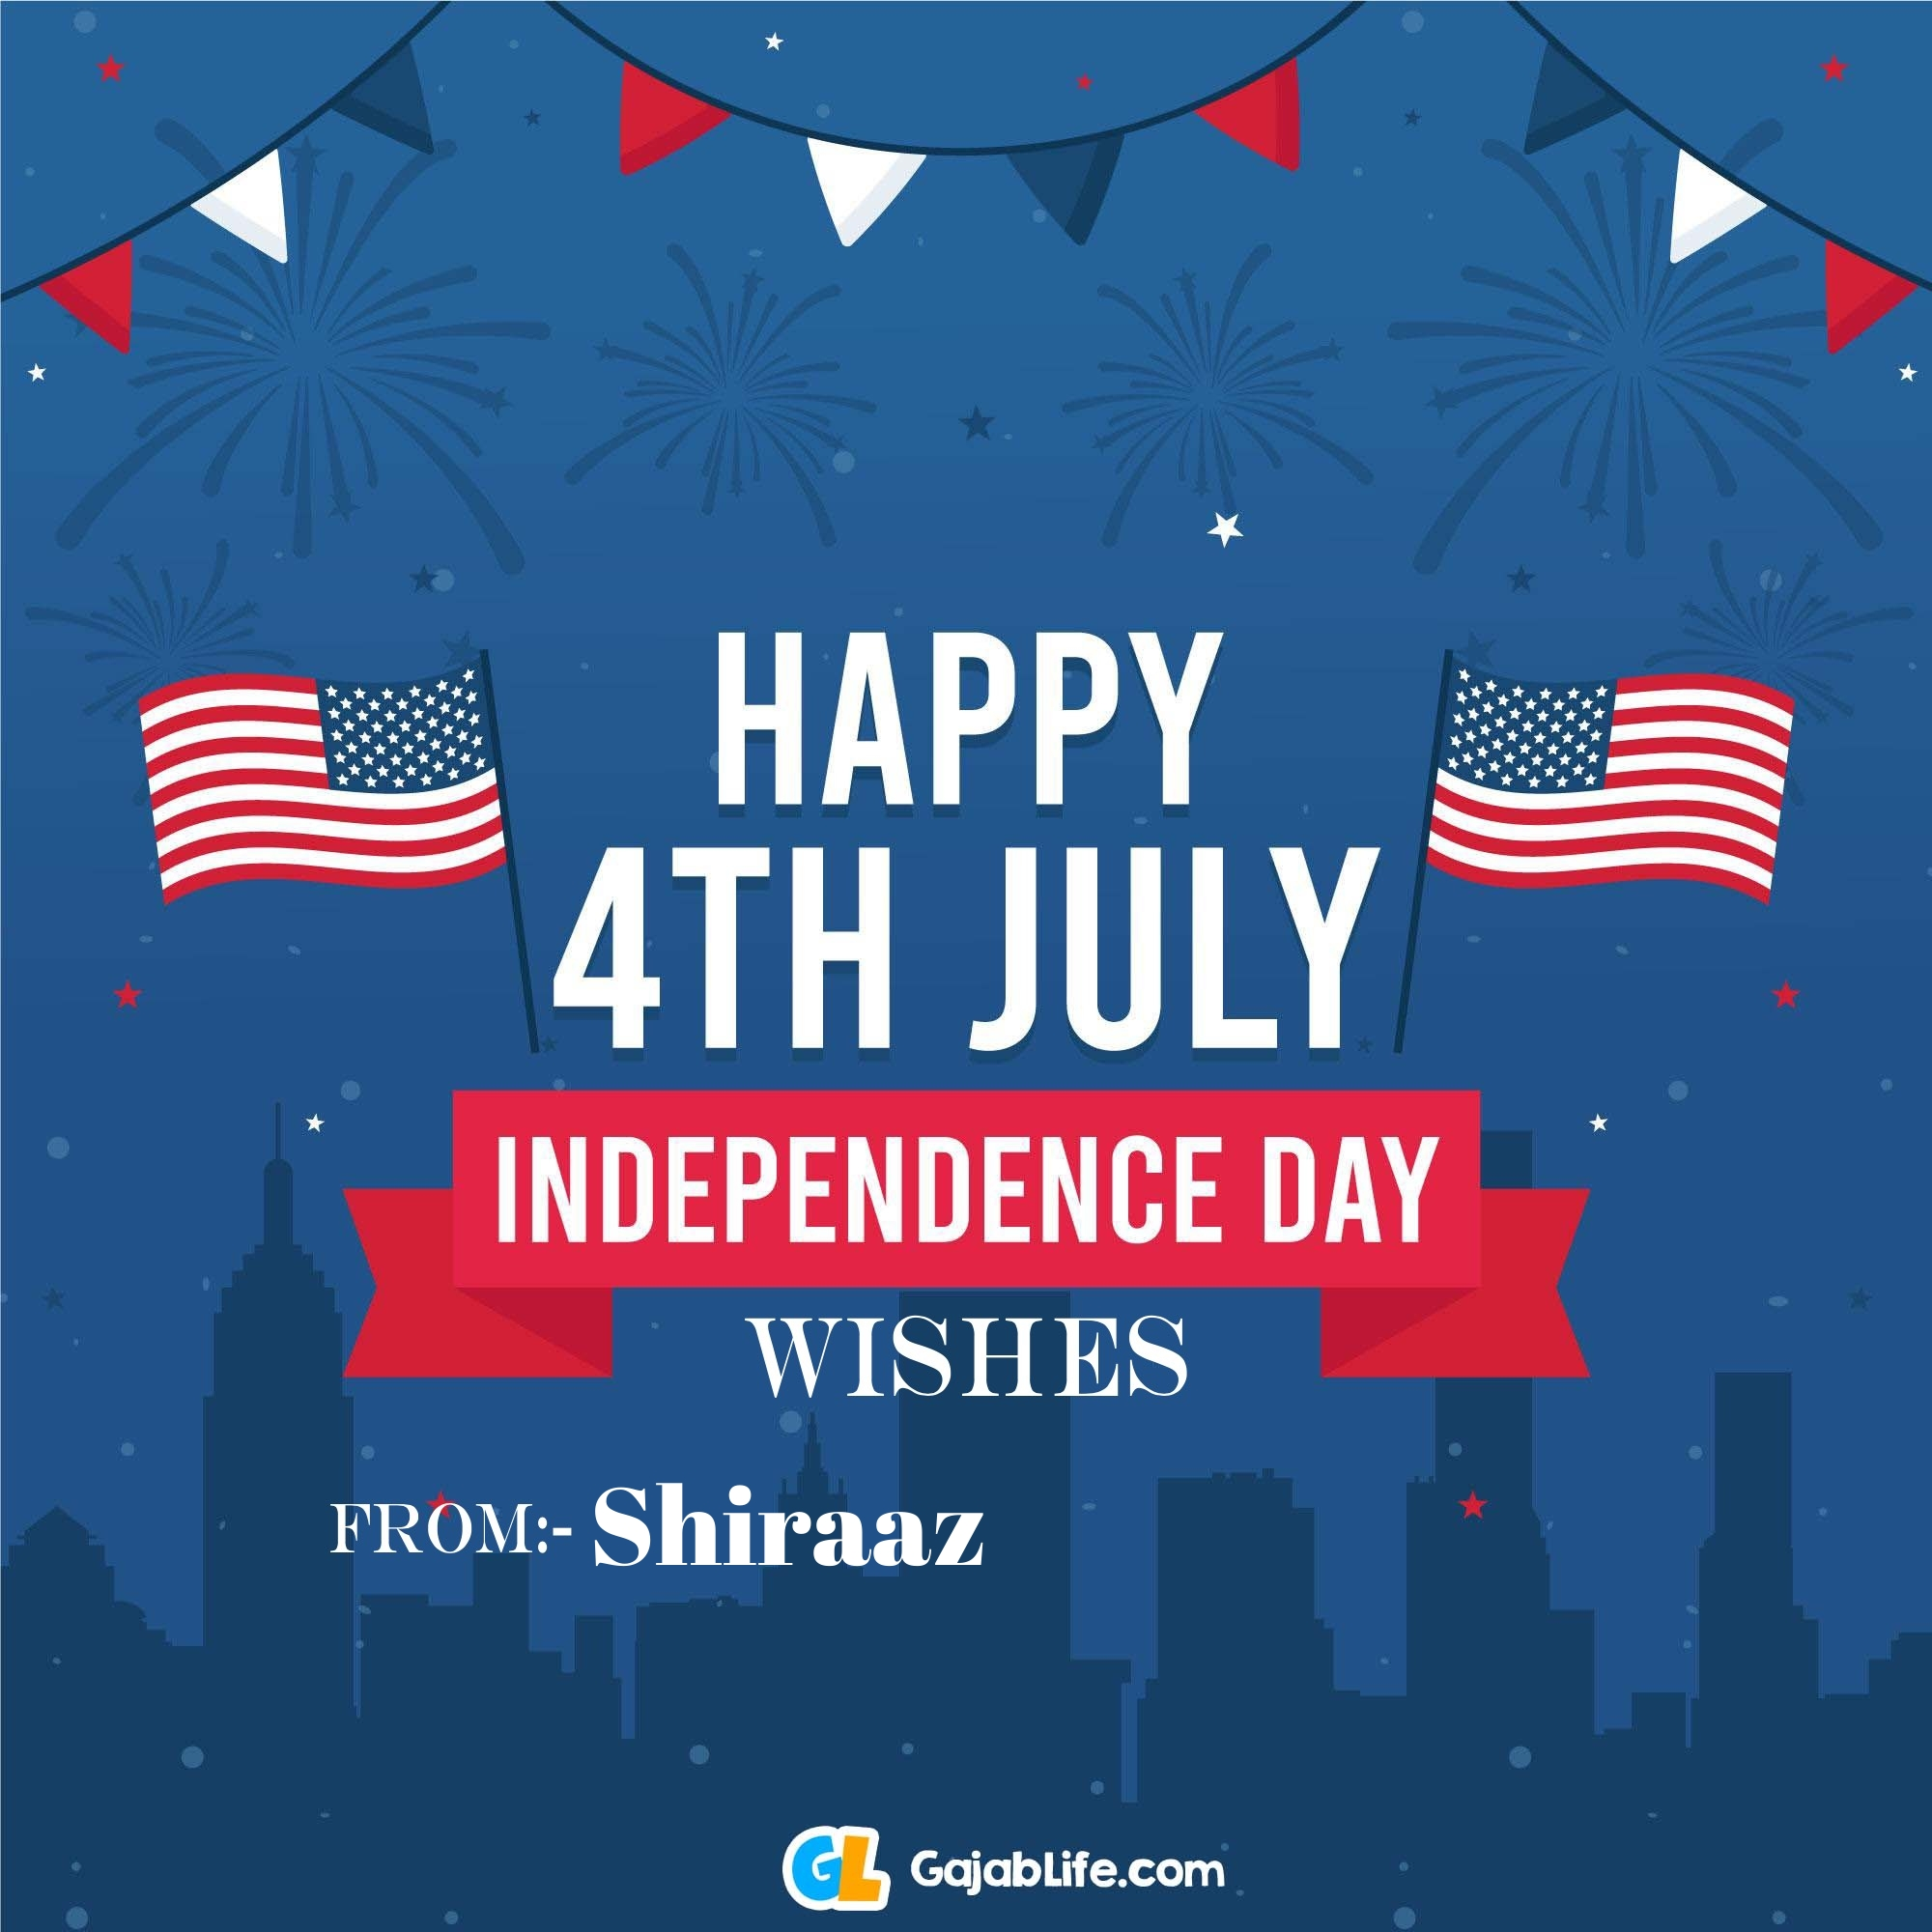 Shiraaz happy independence day united states of america images